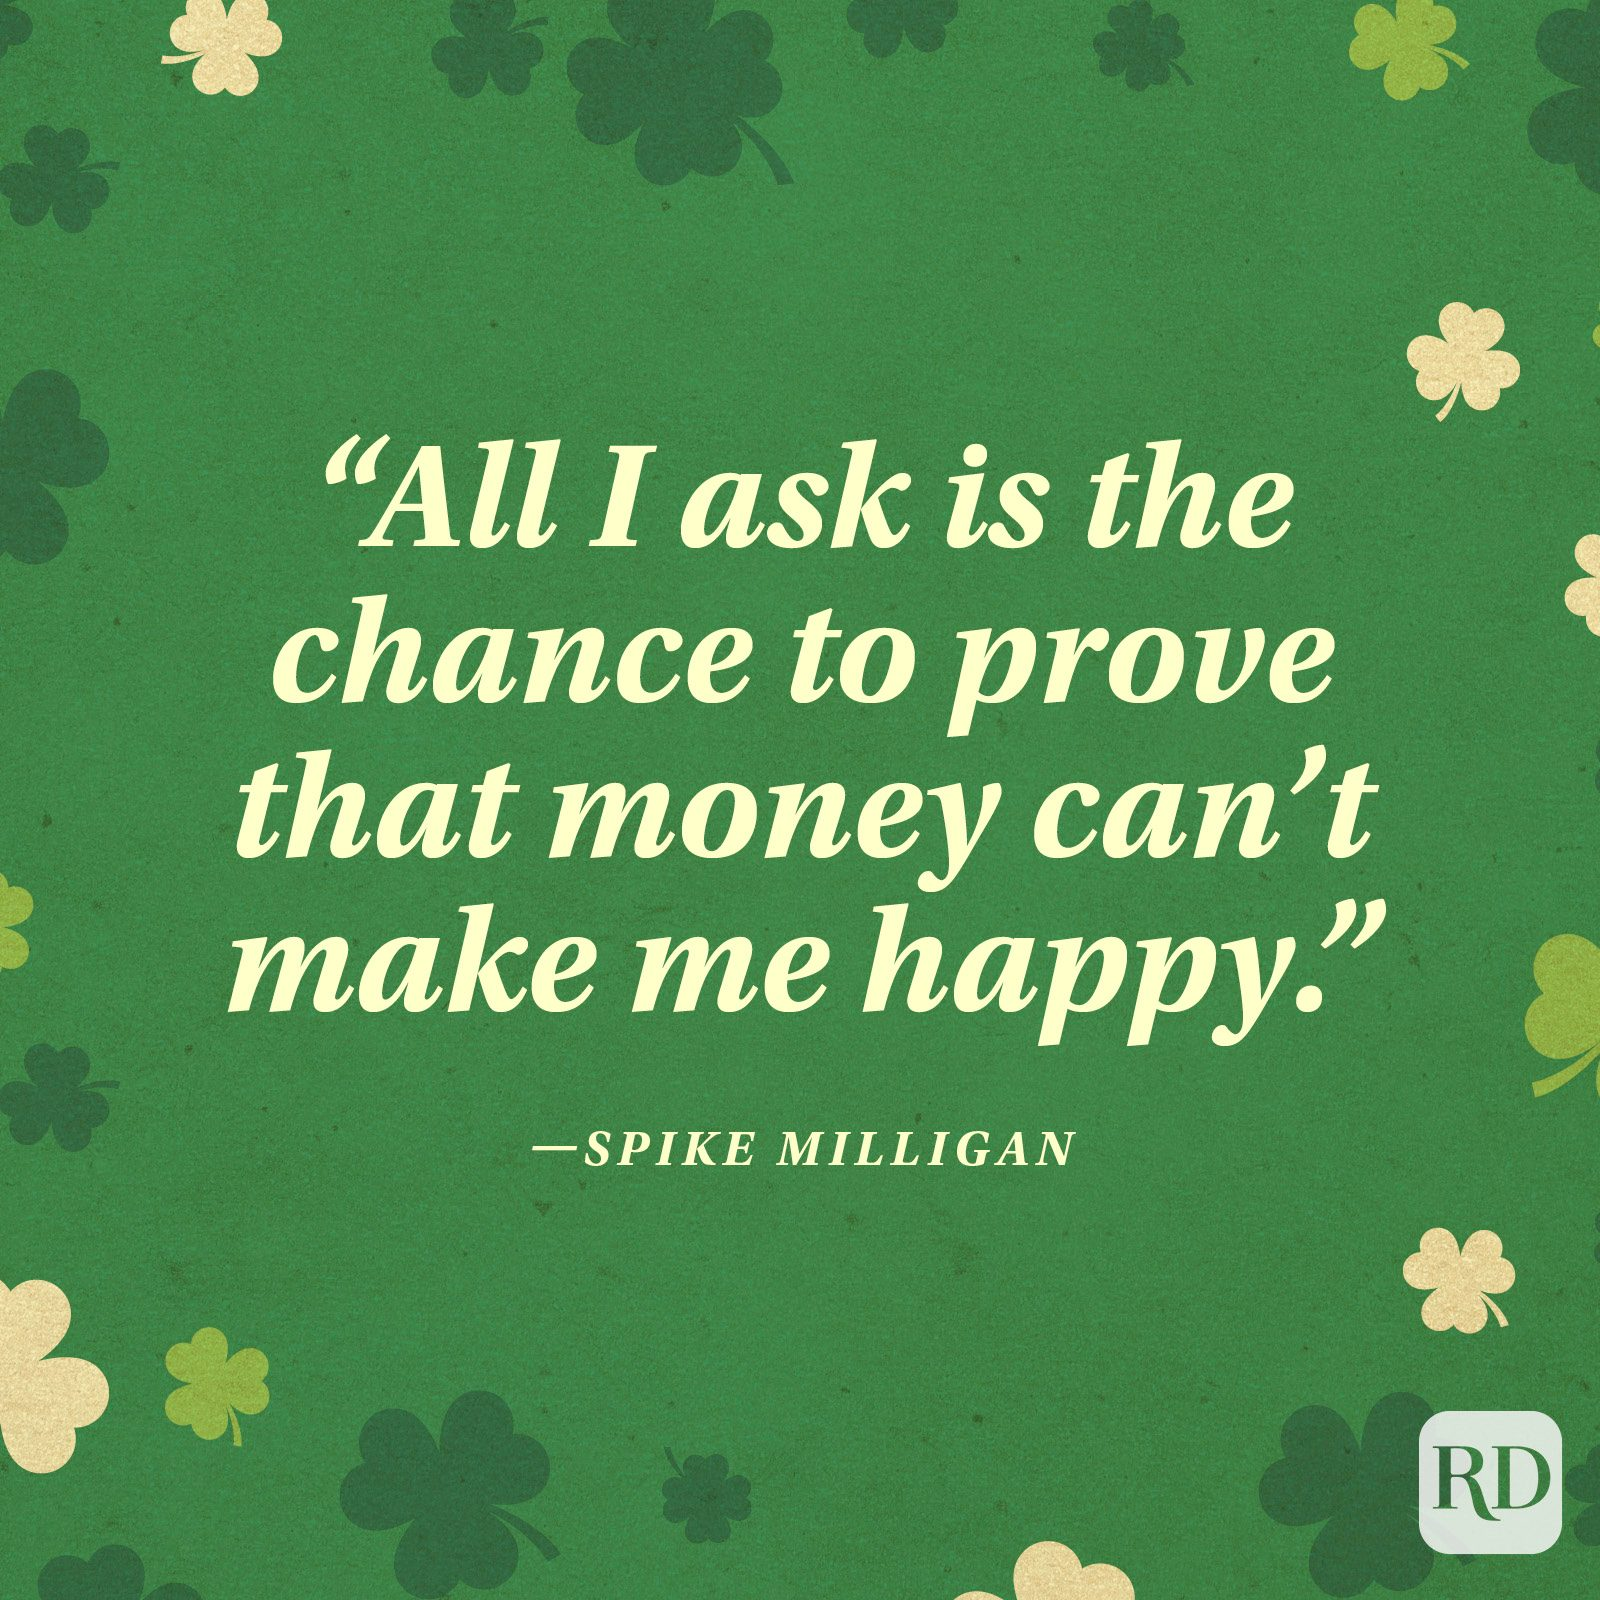 """All I ask is the chance to prove that money can't make me happy."" —Spike Milligan"